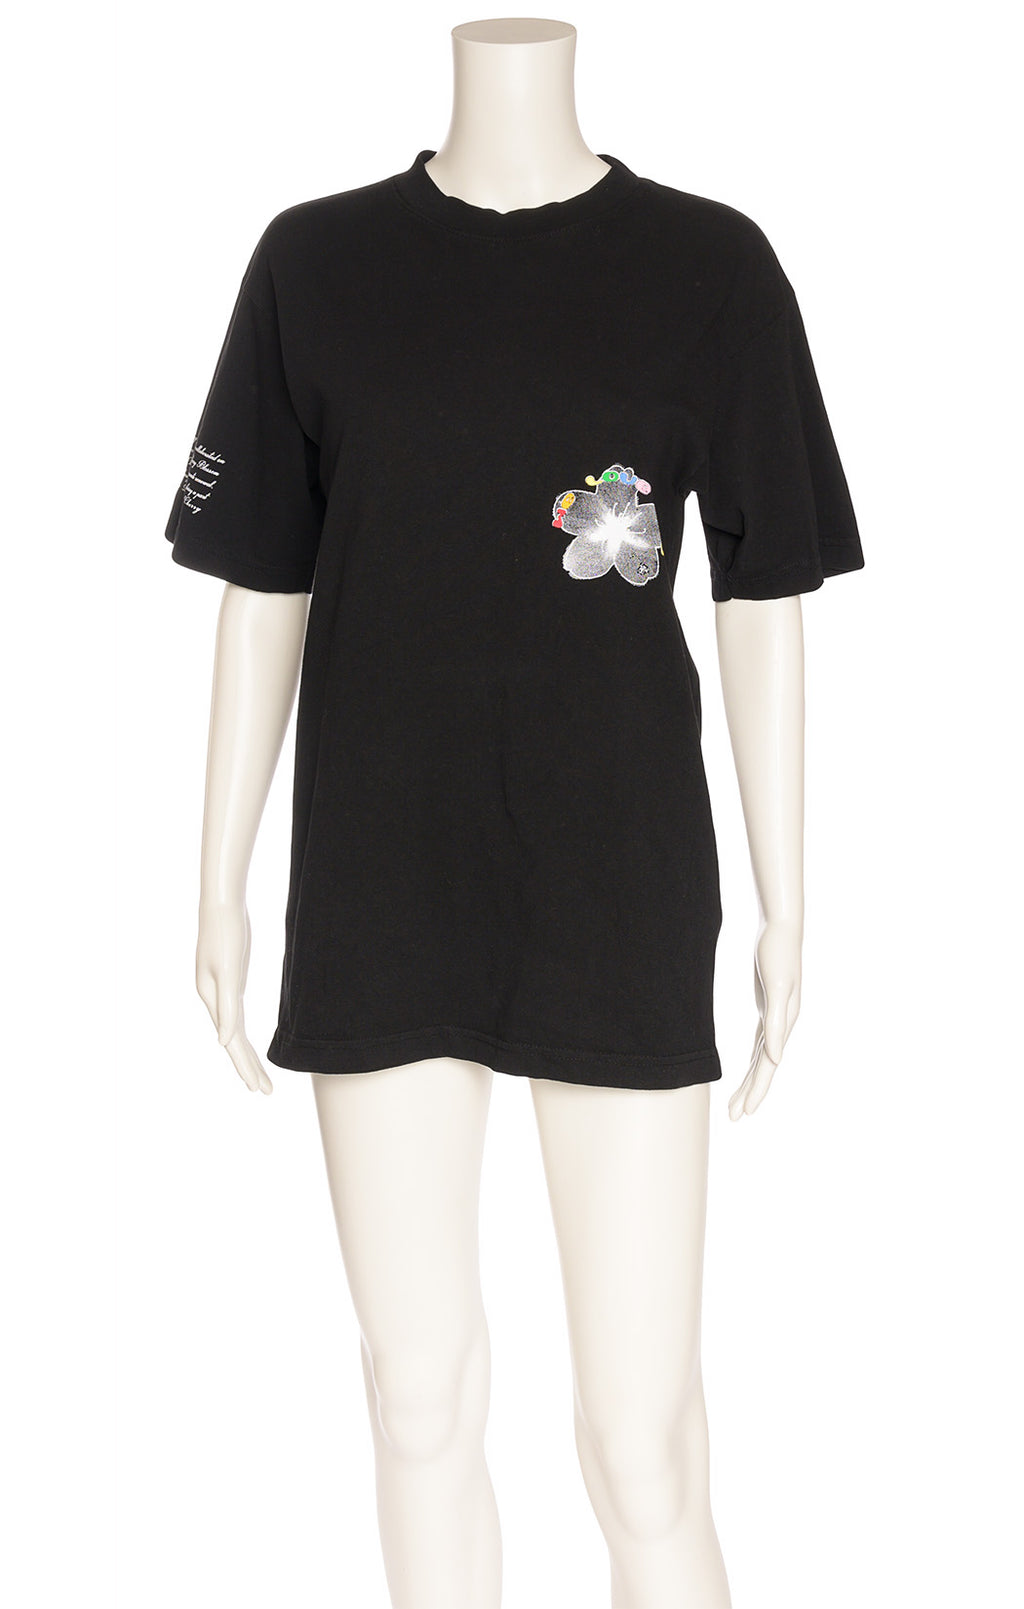 Black shirt sleeve t-shirt with graphics front and back